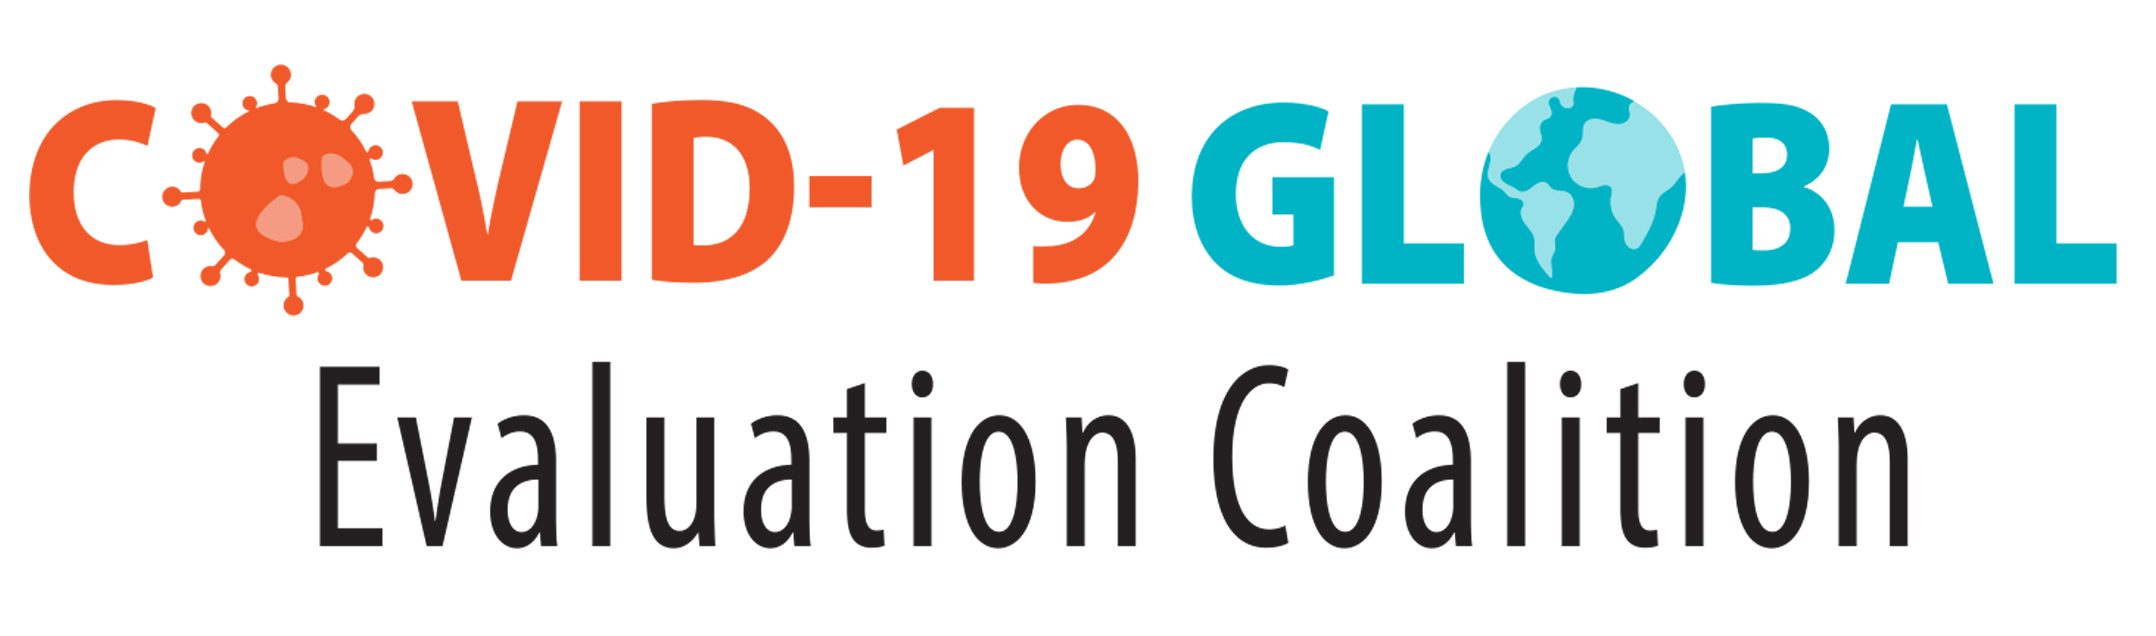 COVID-19 Global Evaluation Coalition